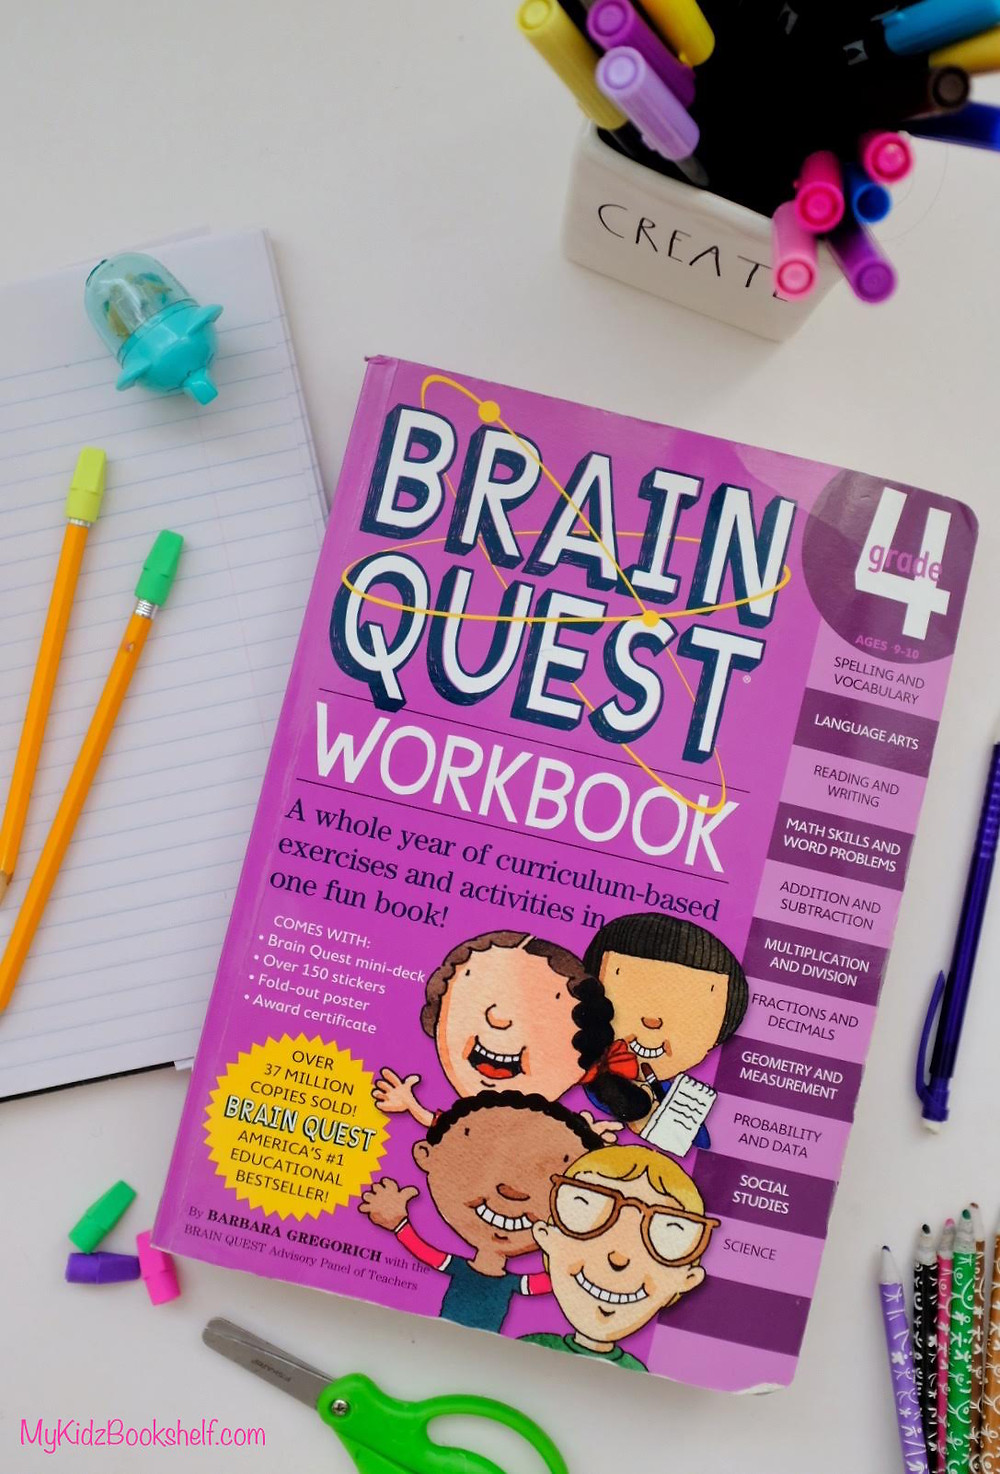 Brain Quest workbook for grade 4 with pencils, sharpener and paper